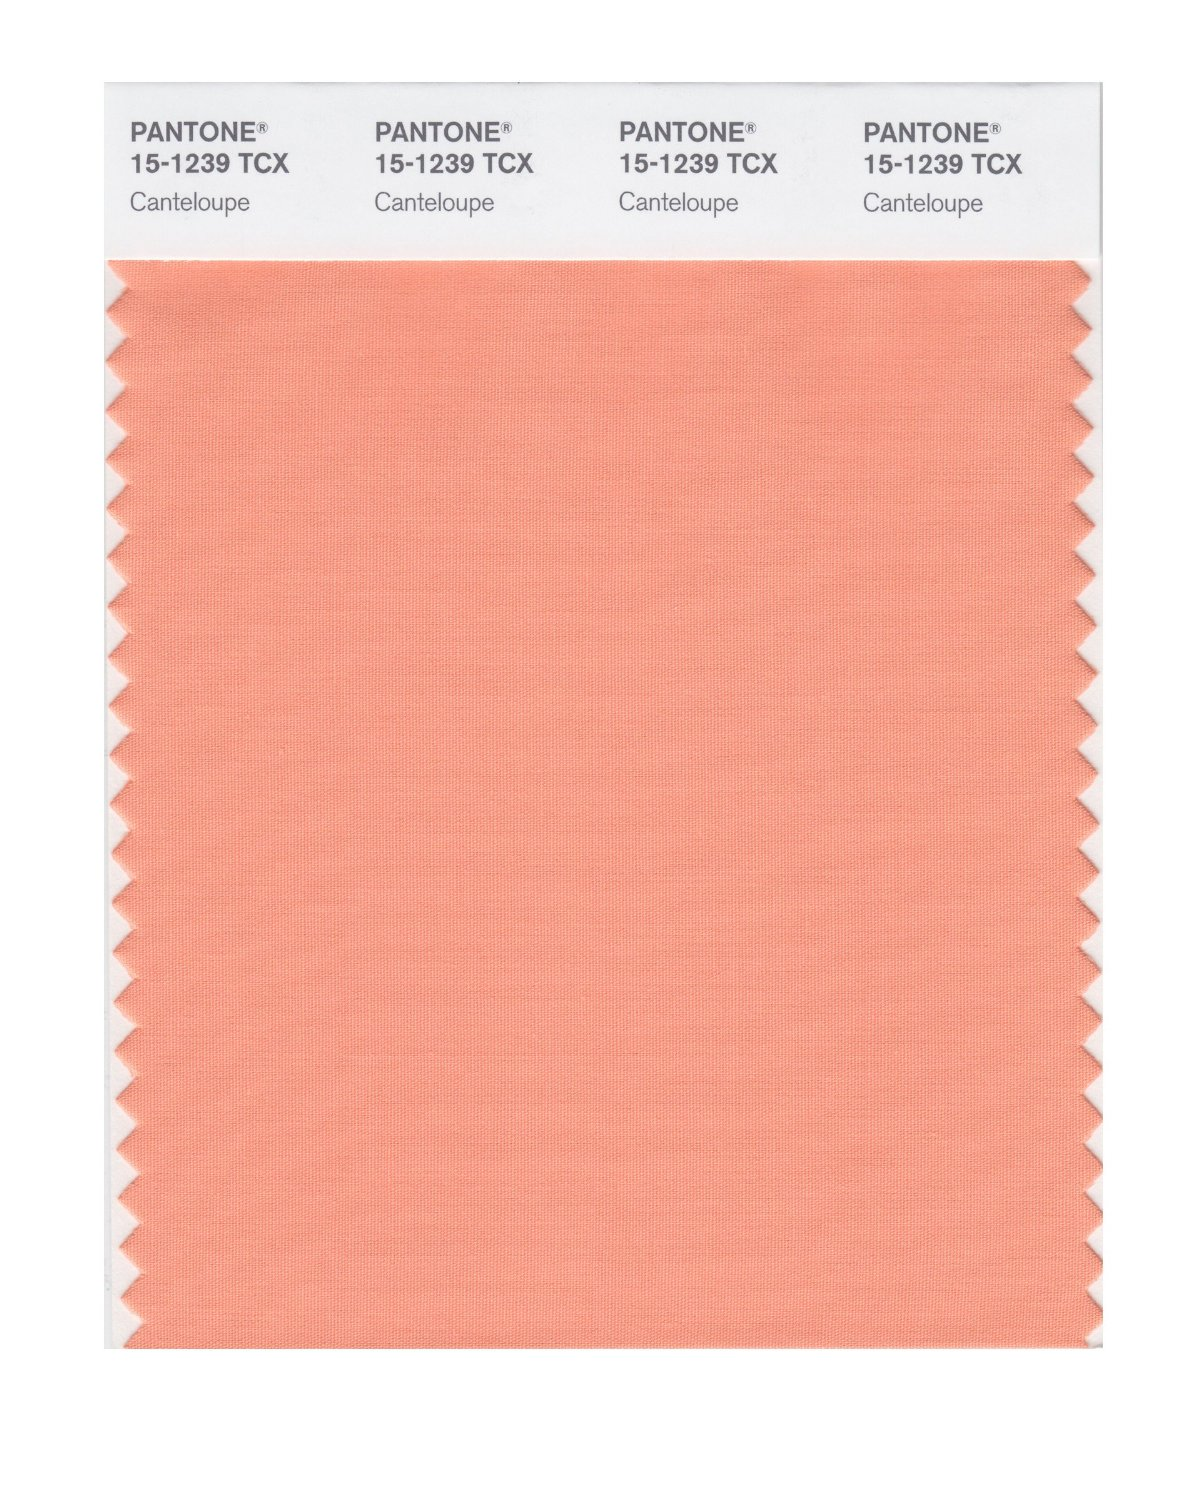 Pantone Smart Swatch 15-1239 Canteloupe